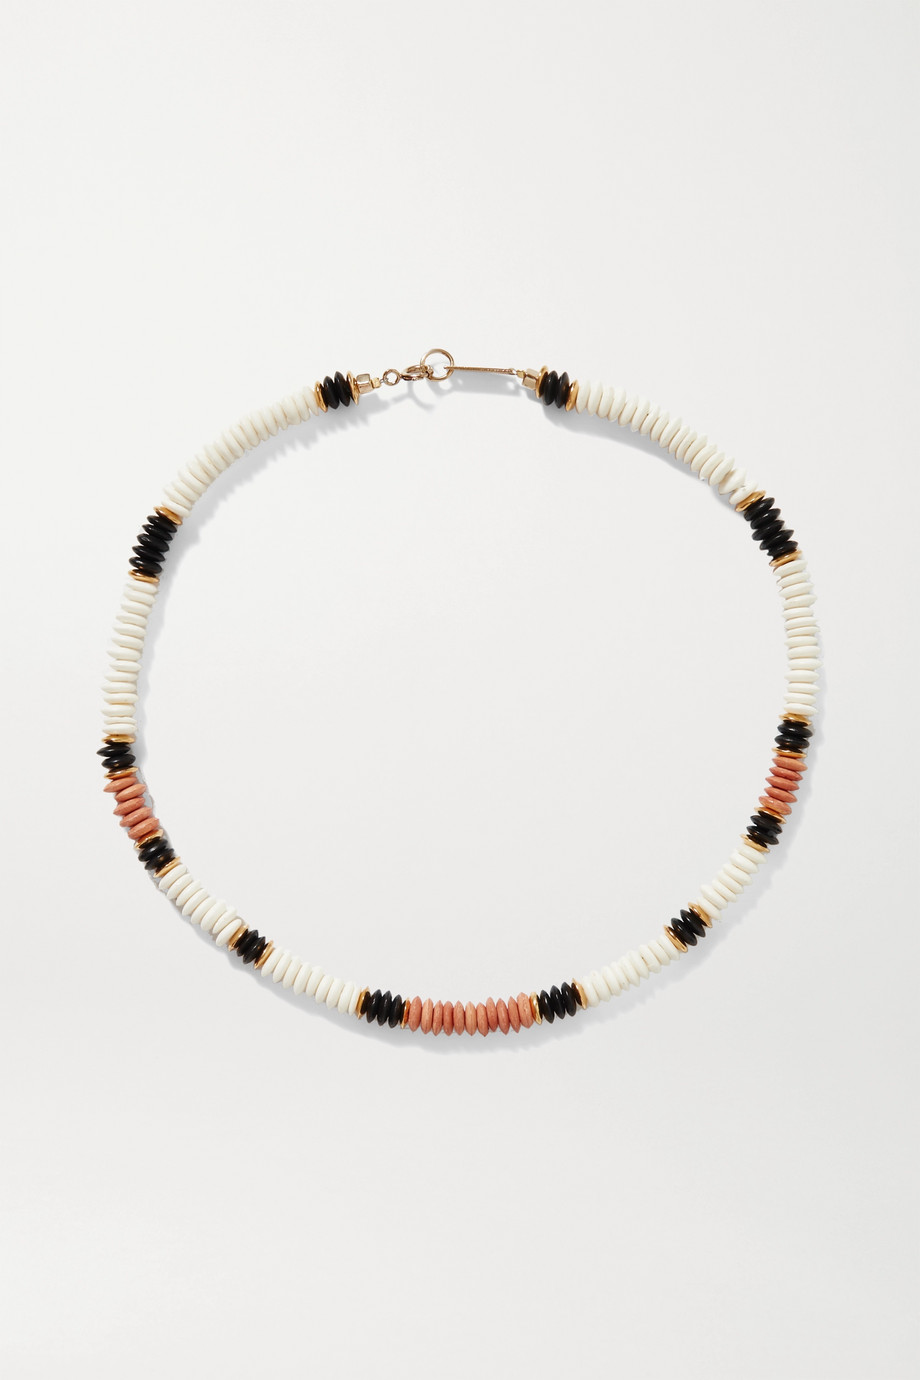 Isabel Marant Gold-tone bone necklace